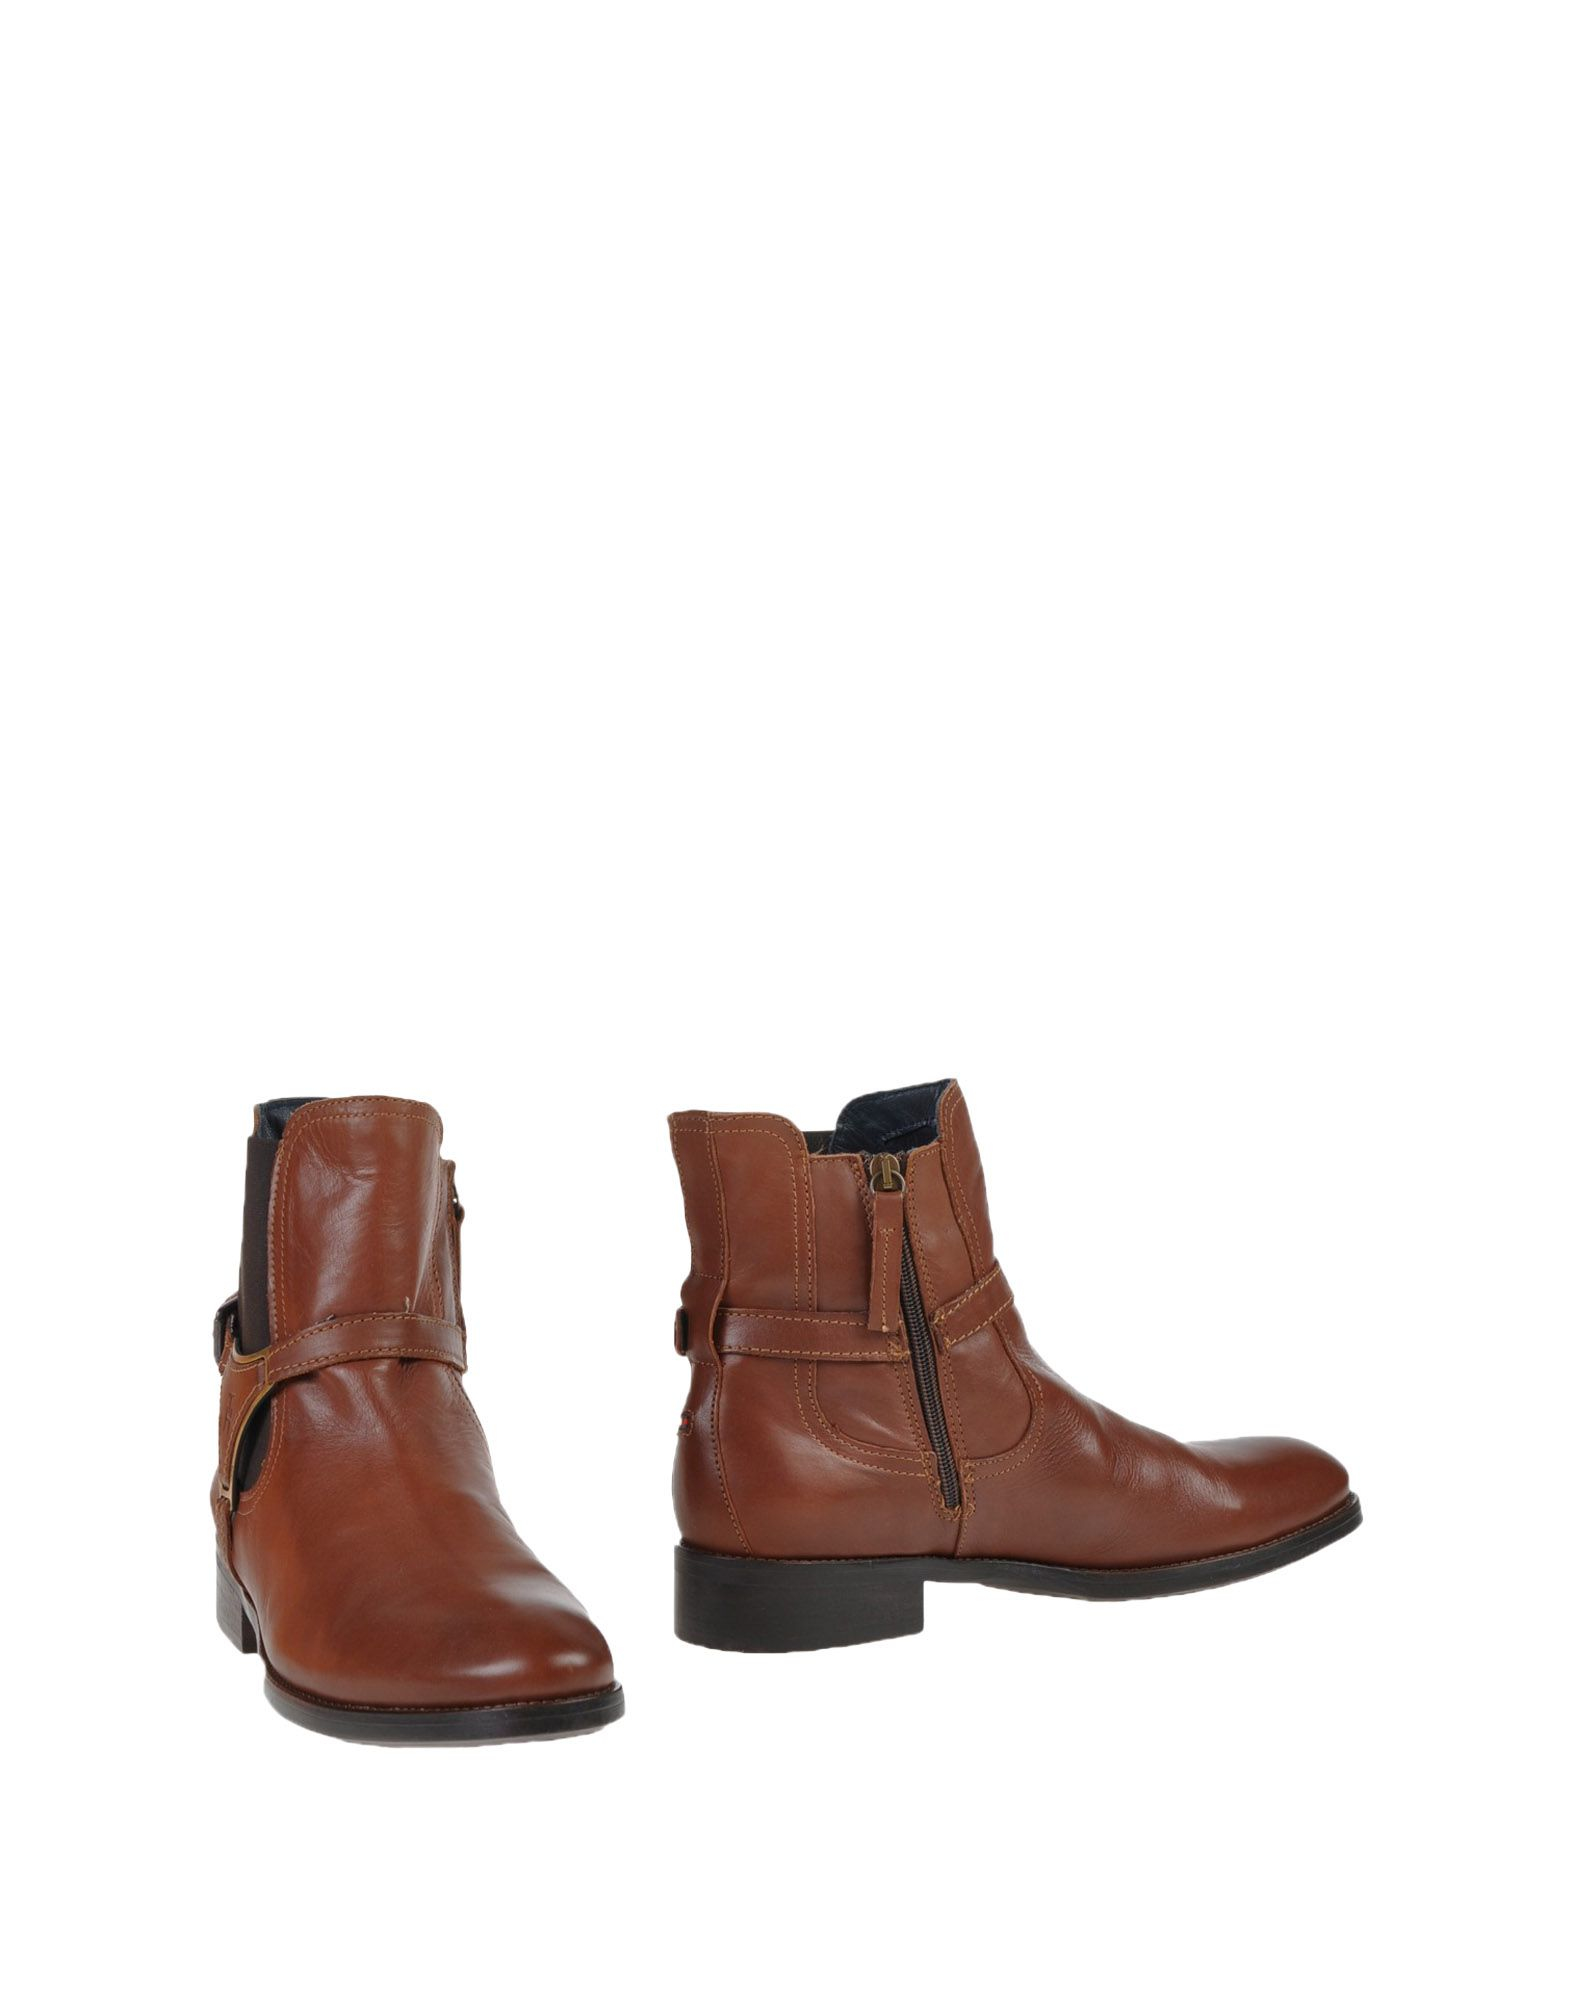 lyst tommy hilfiger ankle boots in brown for men. Black Bedroom Furniture Sets. Home Design Ideas